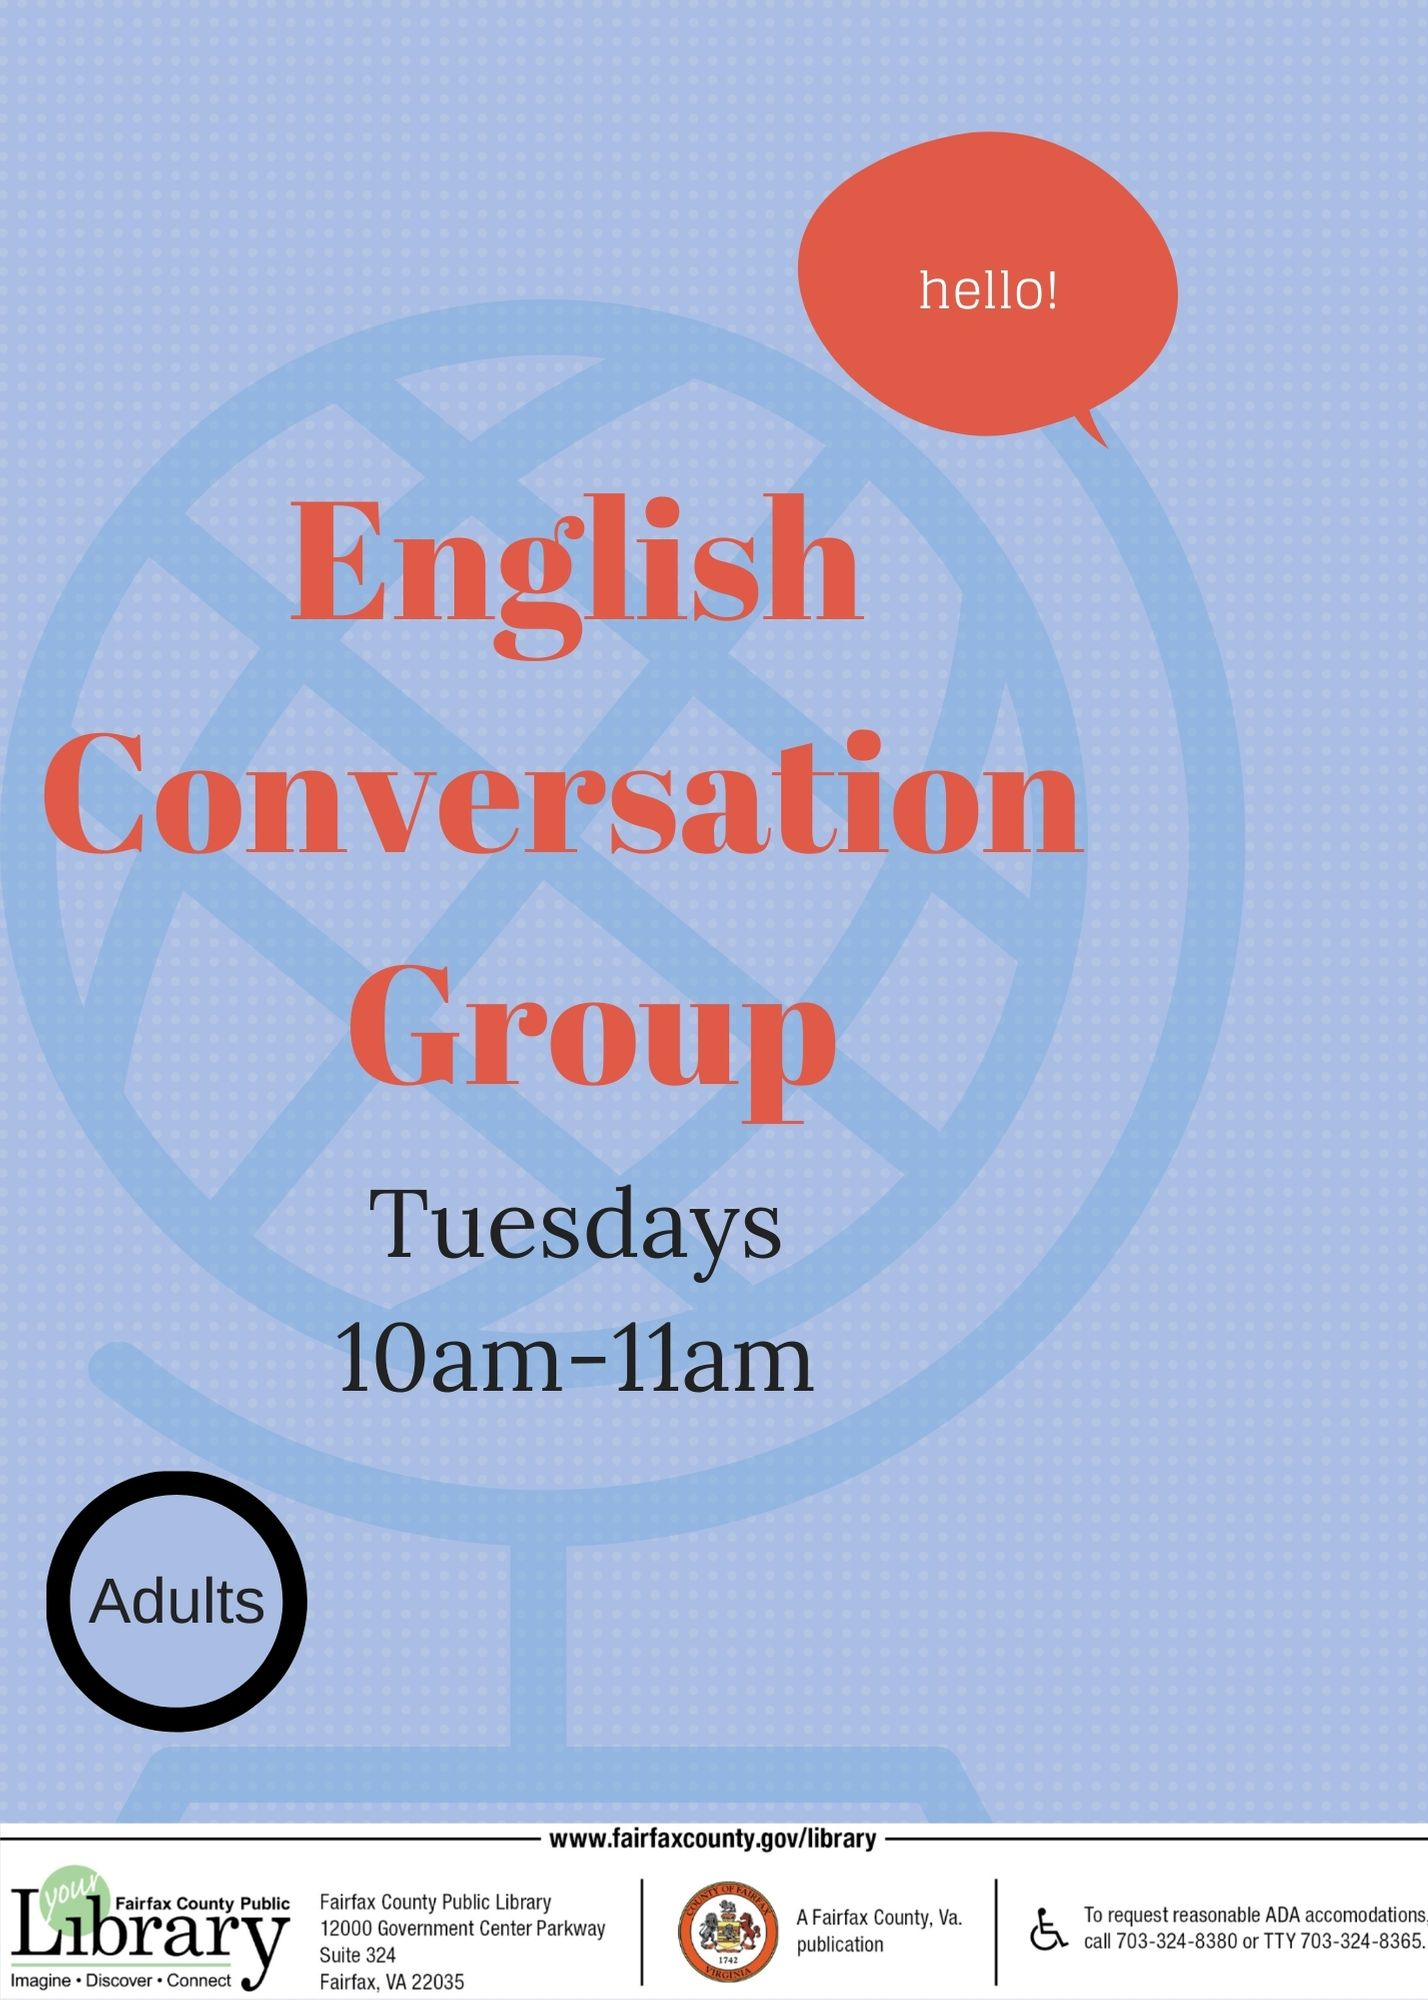 English Conversation Group